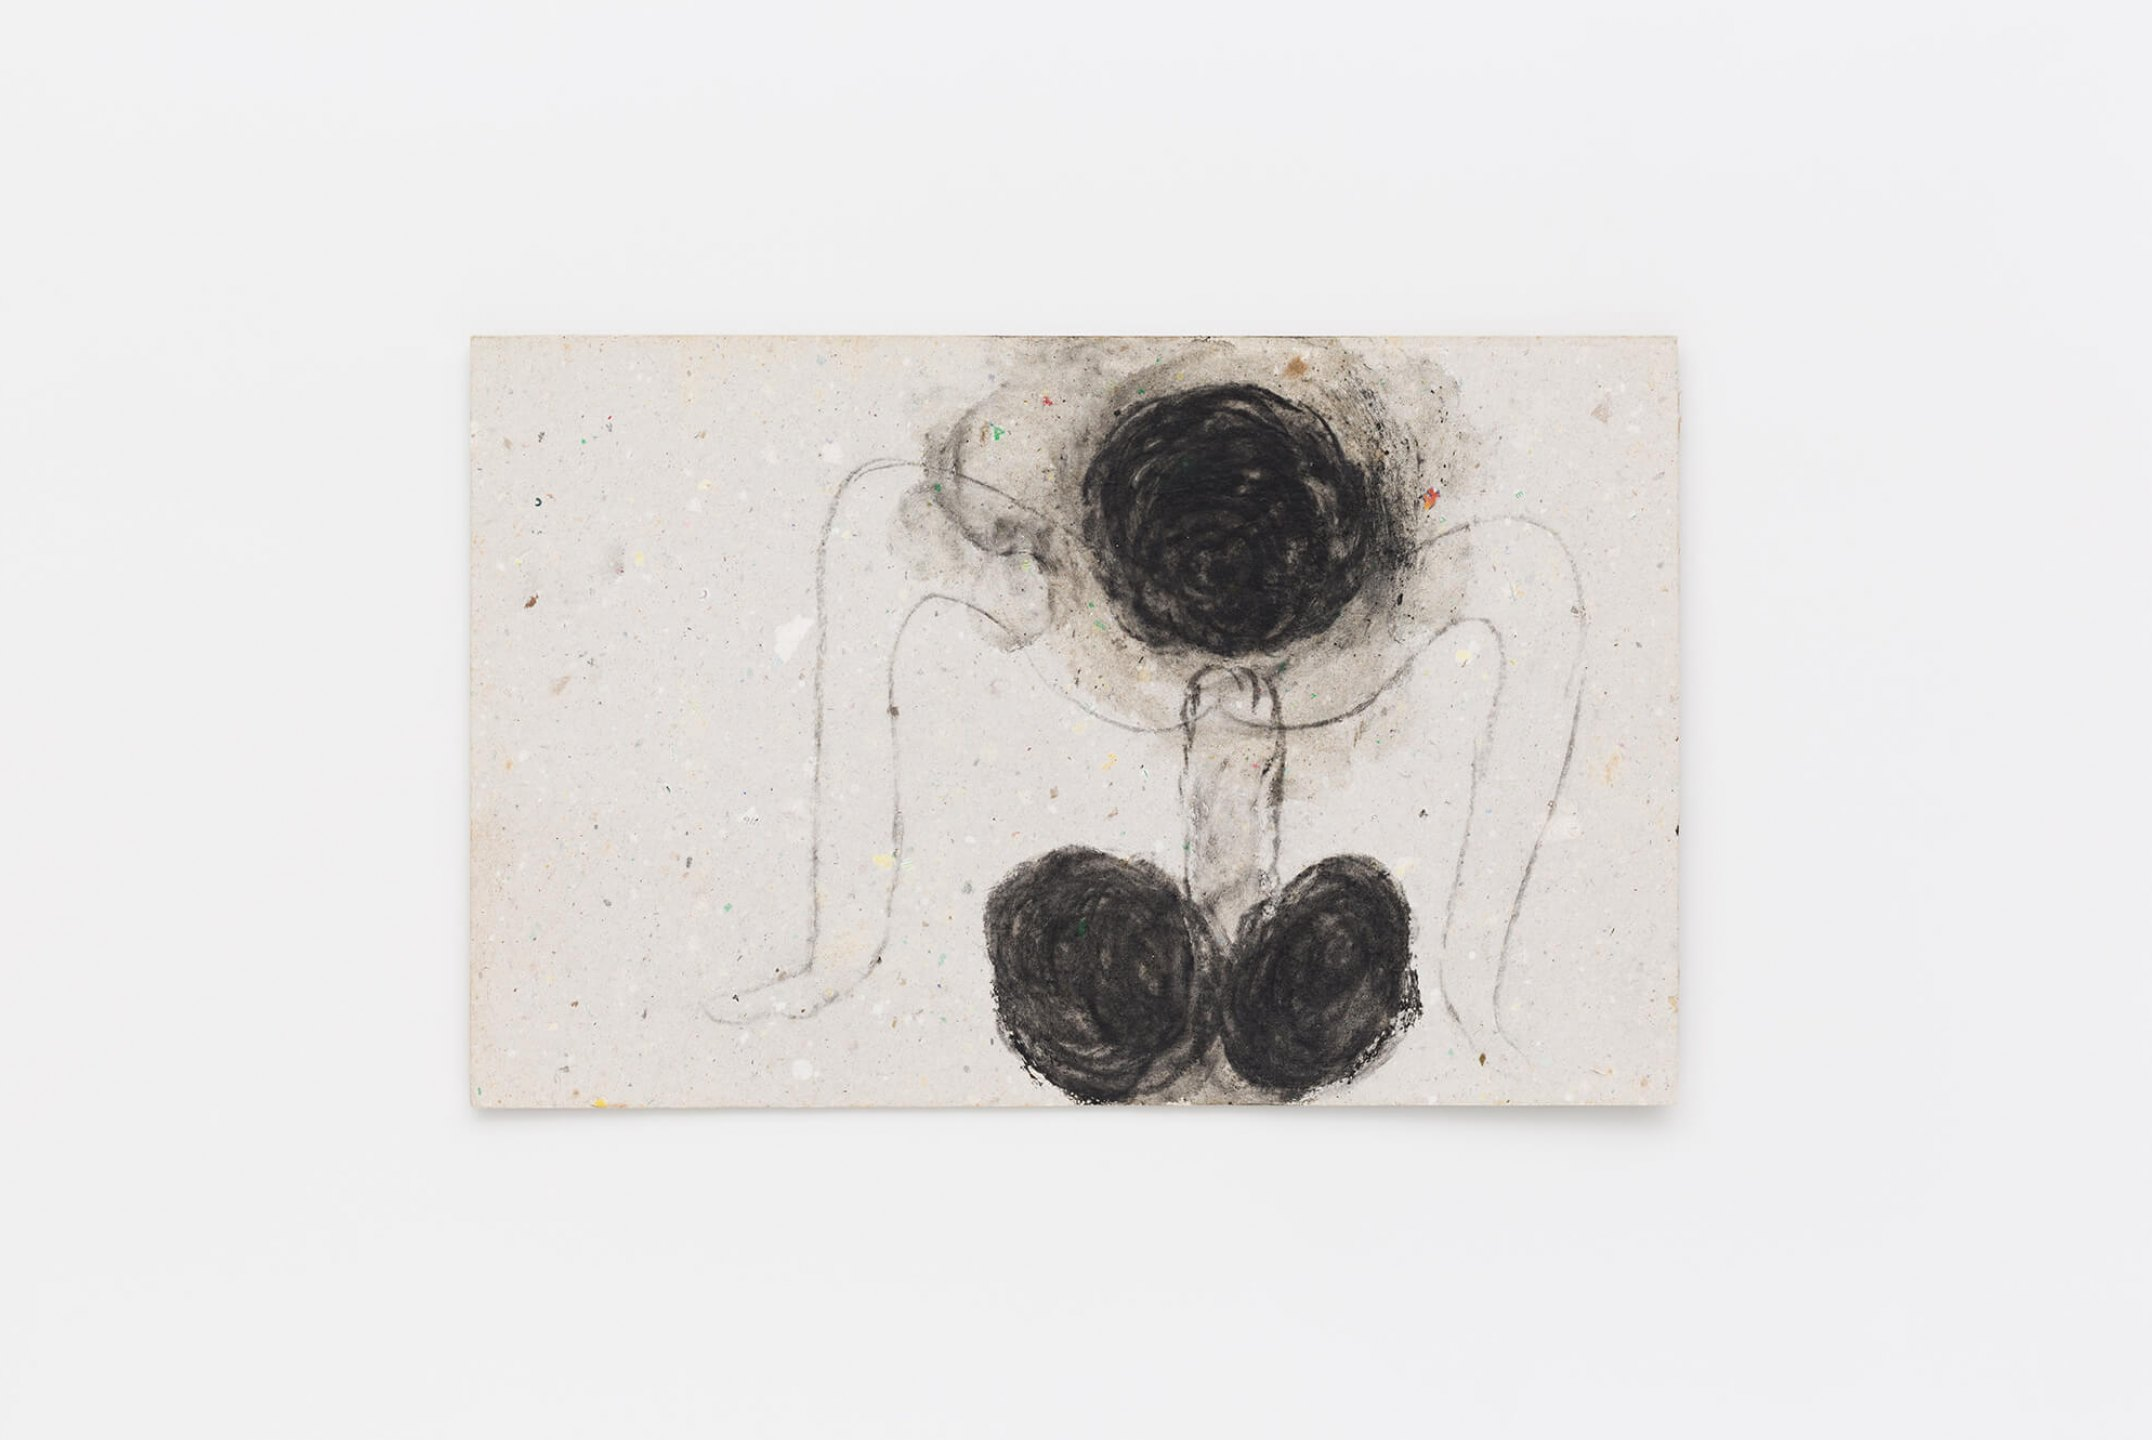 Solange Pessoa,&nbsp;<em>untitled</em>, 2009, pastel on cardboard, 17,4 × 27 cm - Mendes Wood DM